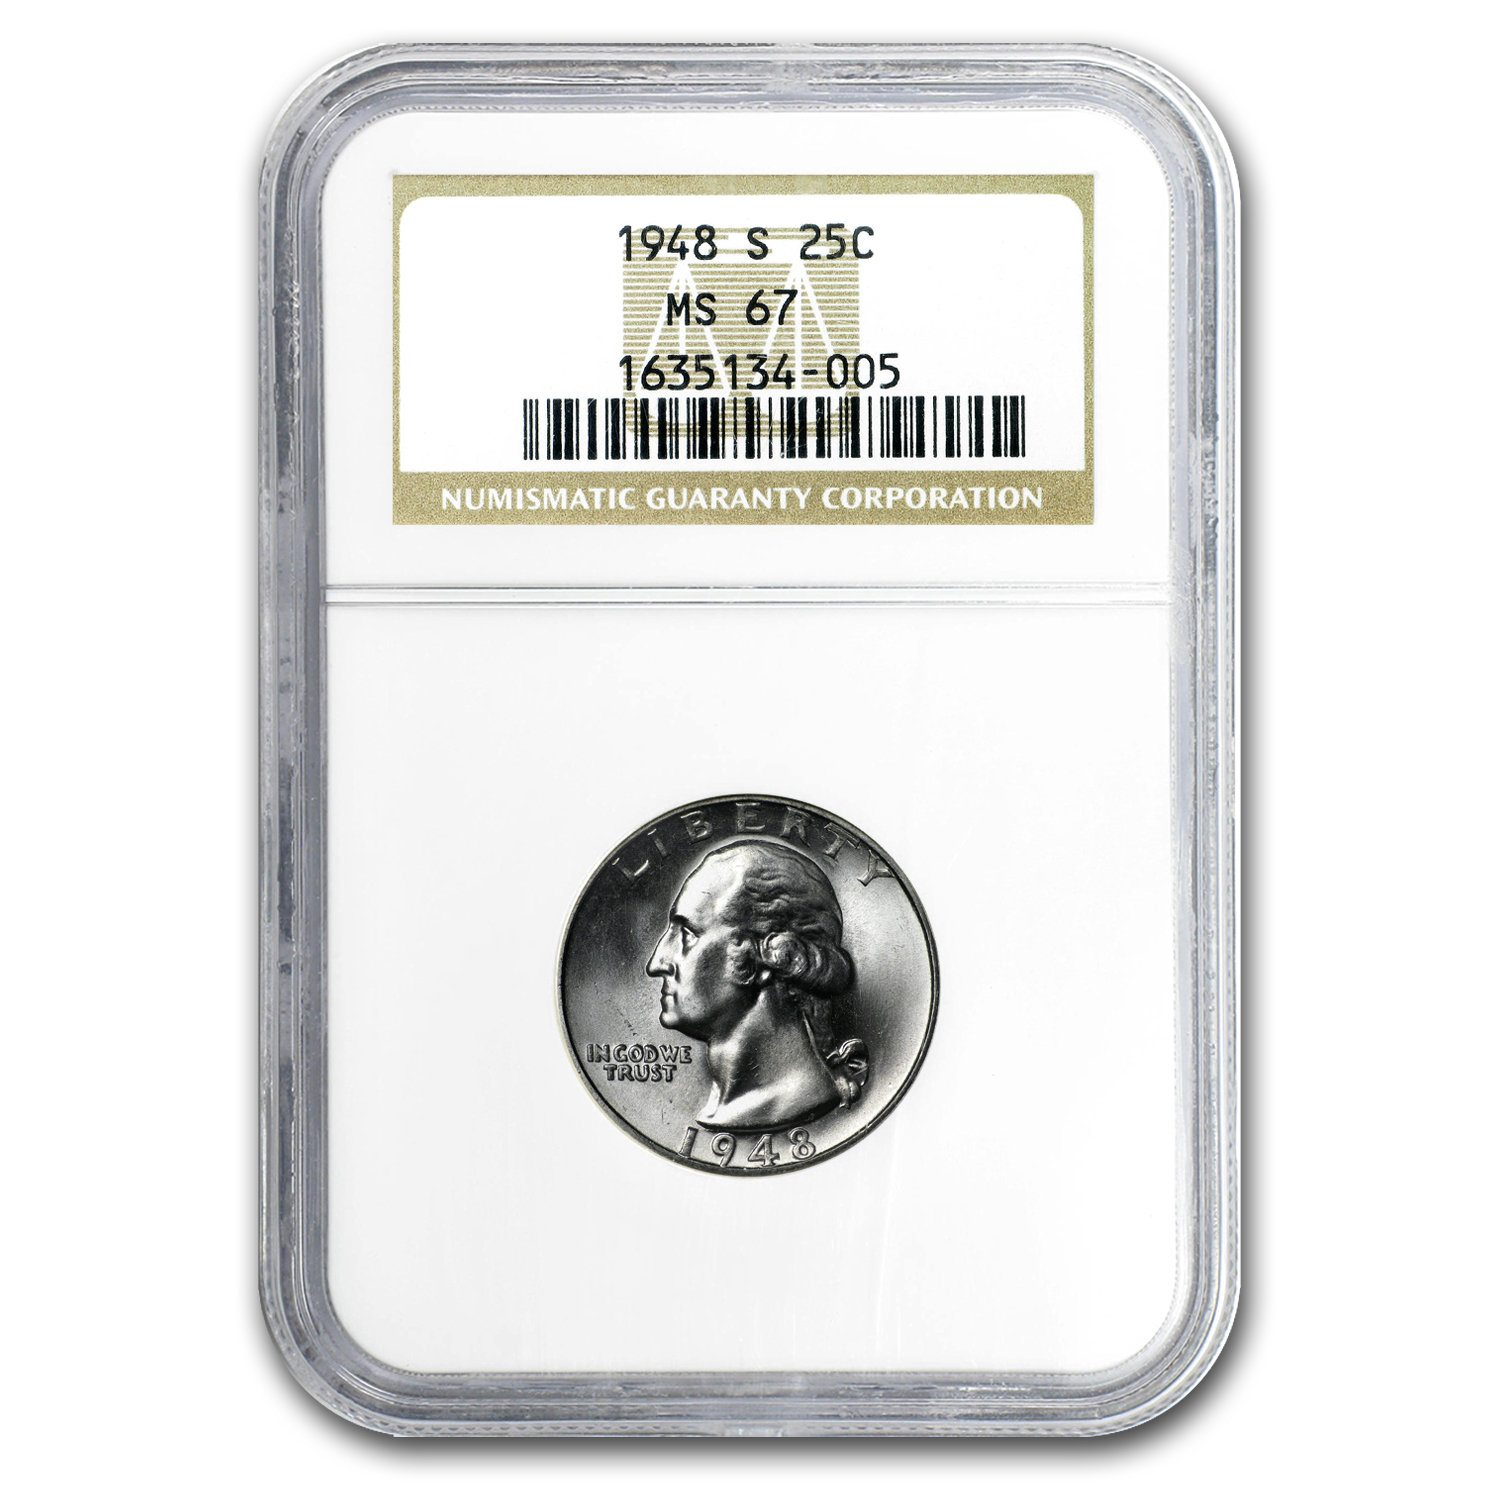 1948-S Washington Quarter MS-67 NGC